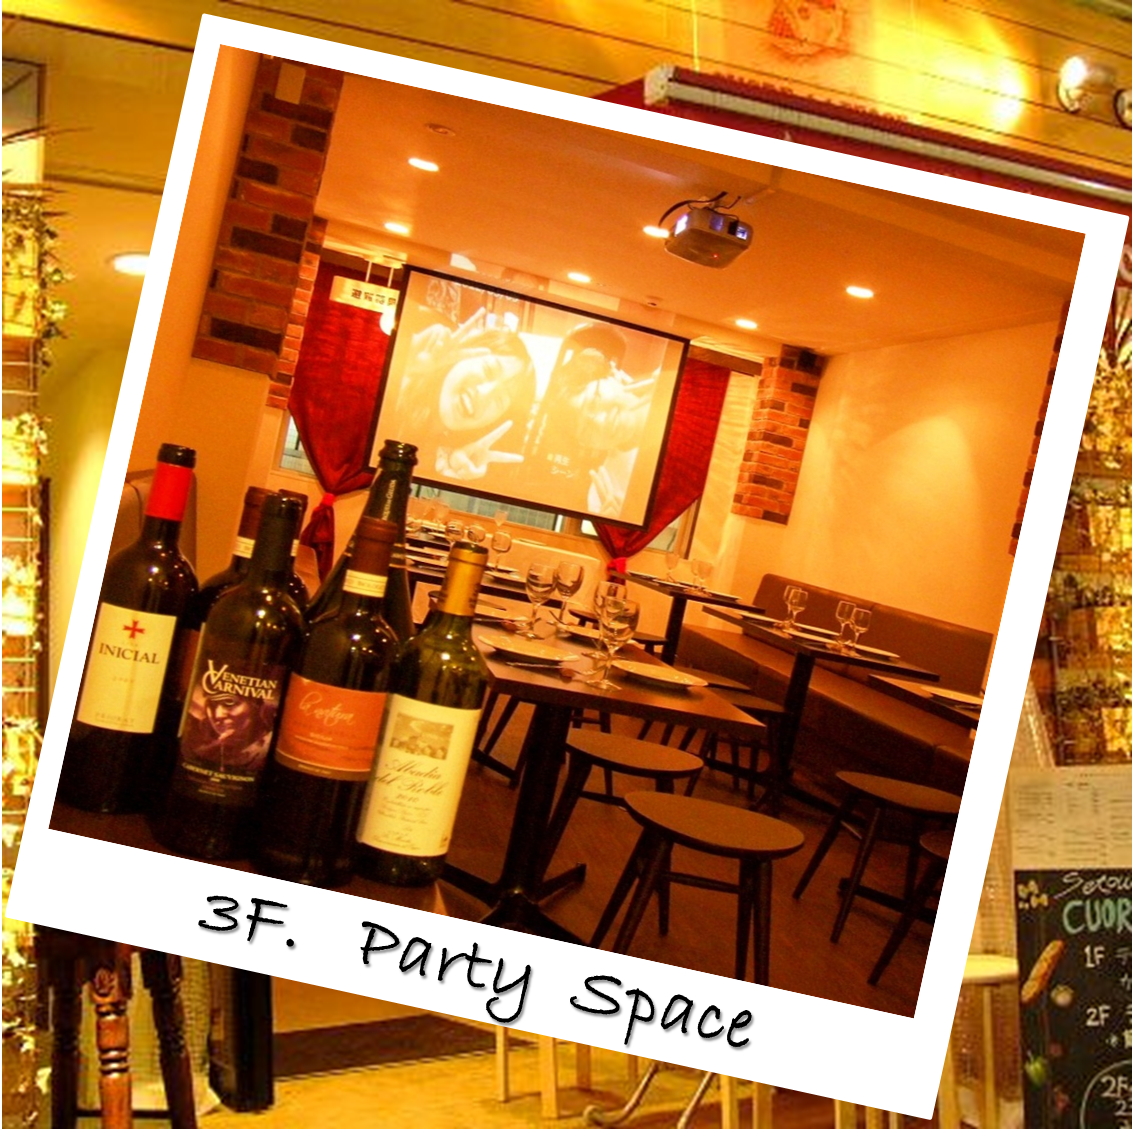 【3F】 Party space has a screen ★ From 25 people up to 40 people can be used.